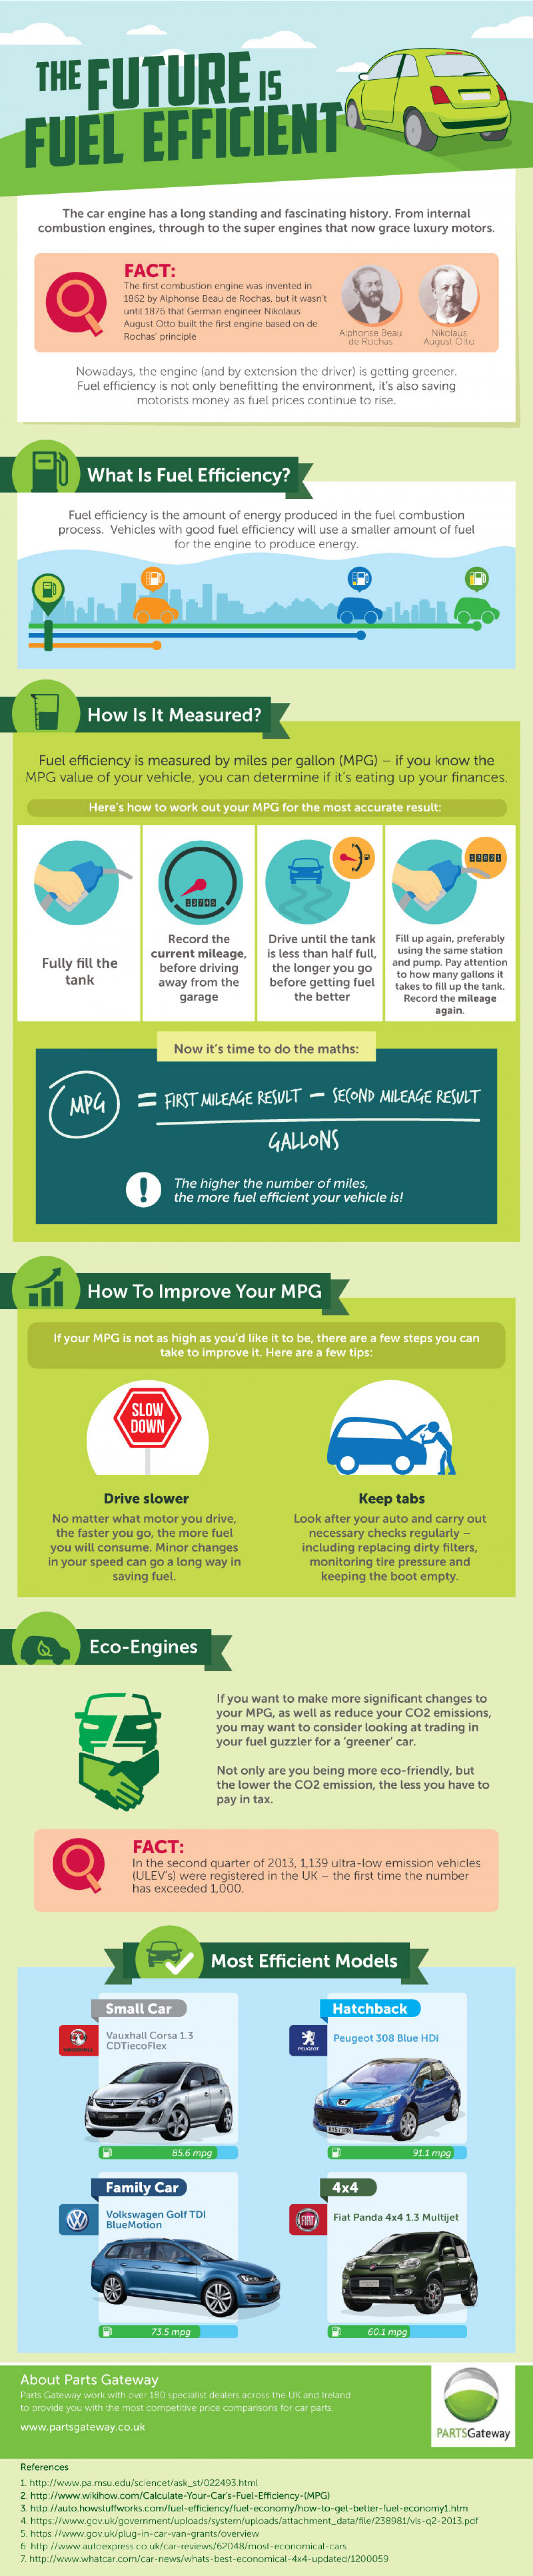 The Future Is Fuel Efficient Infographic